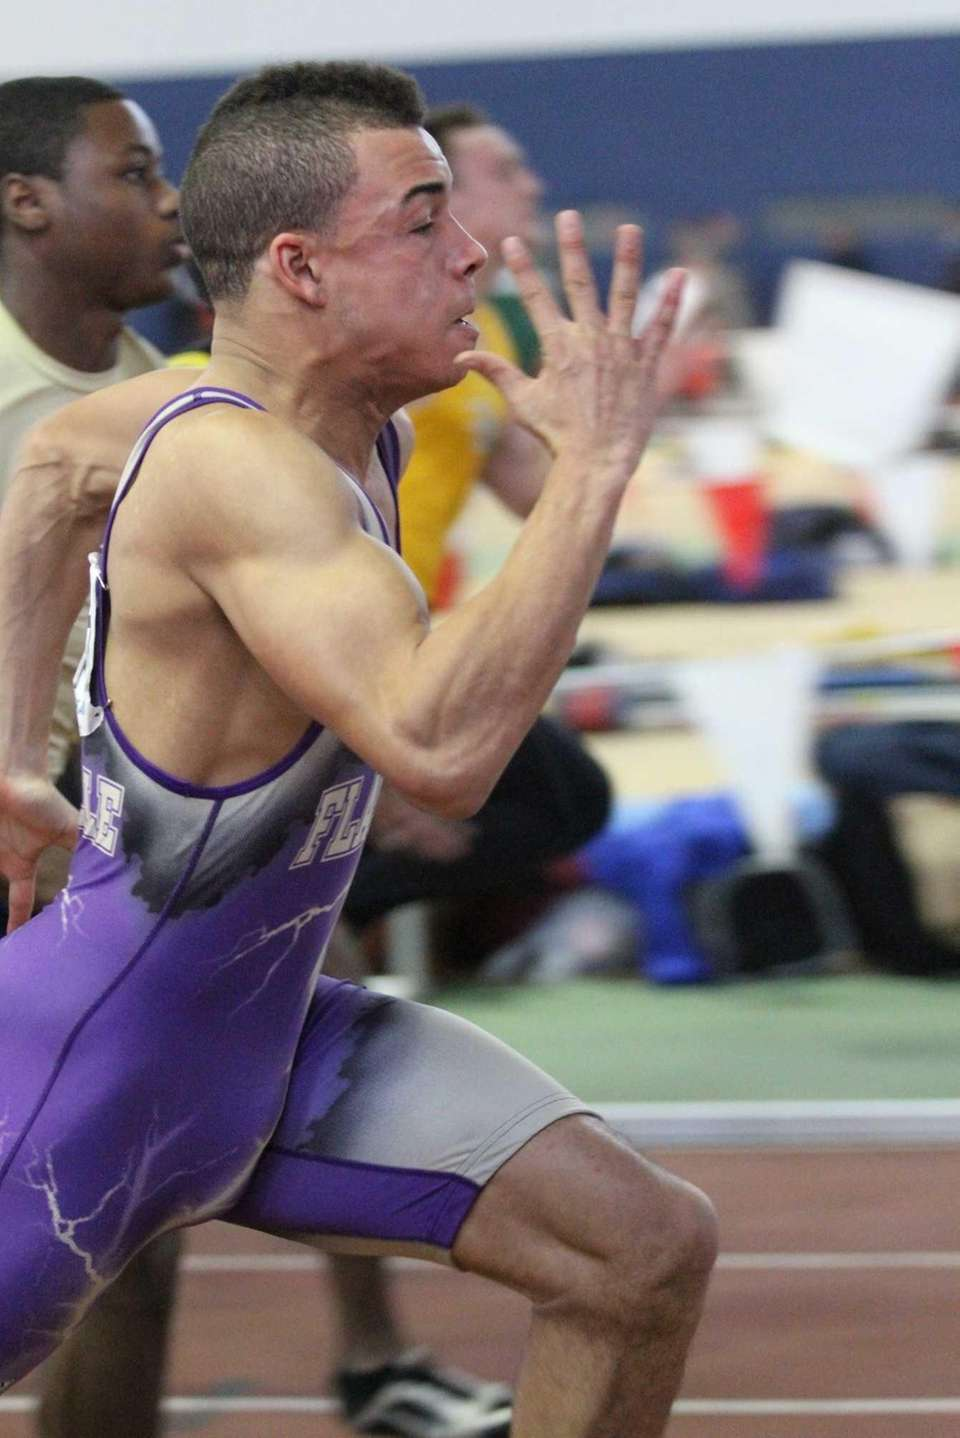 Sayville's Christopher Belcher competes in the 55 meter